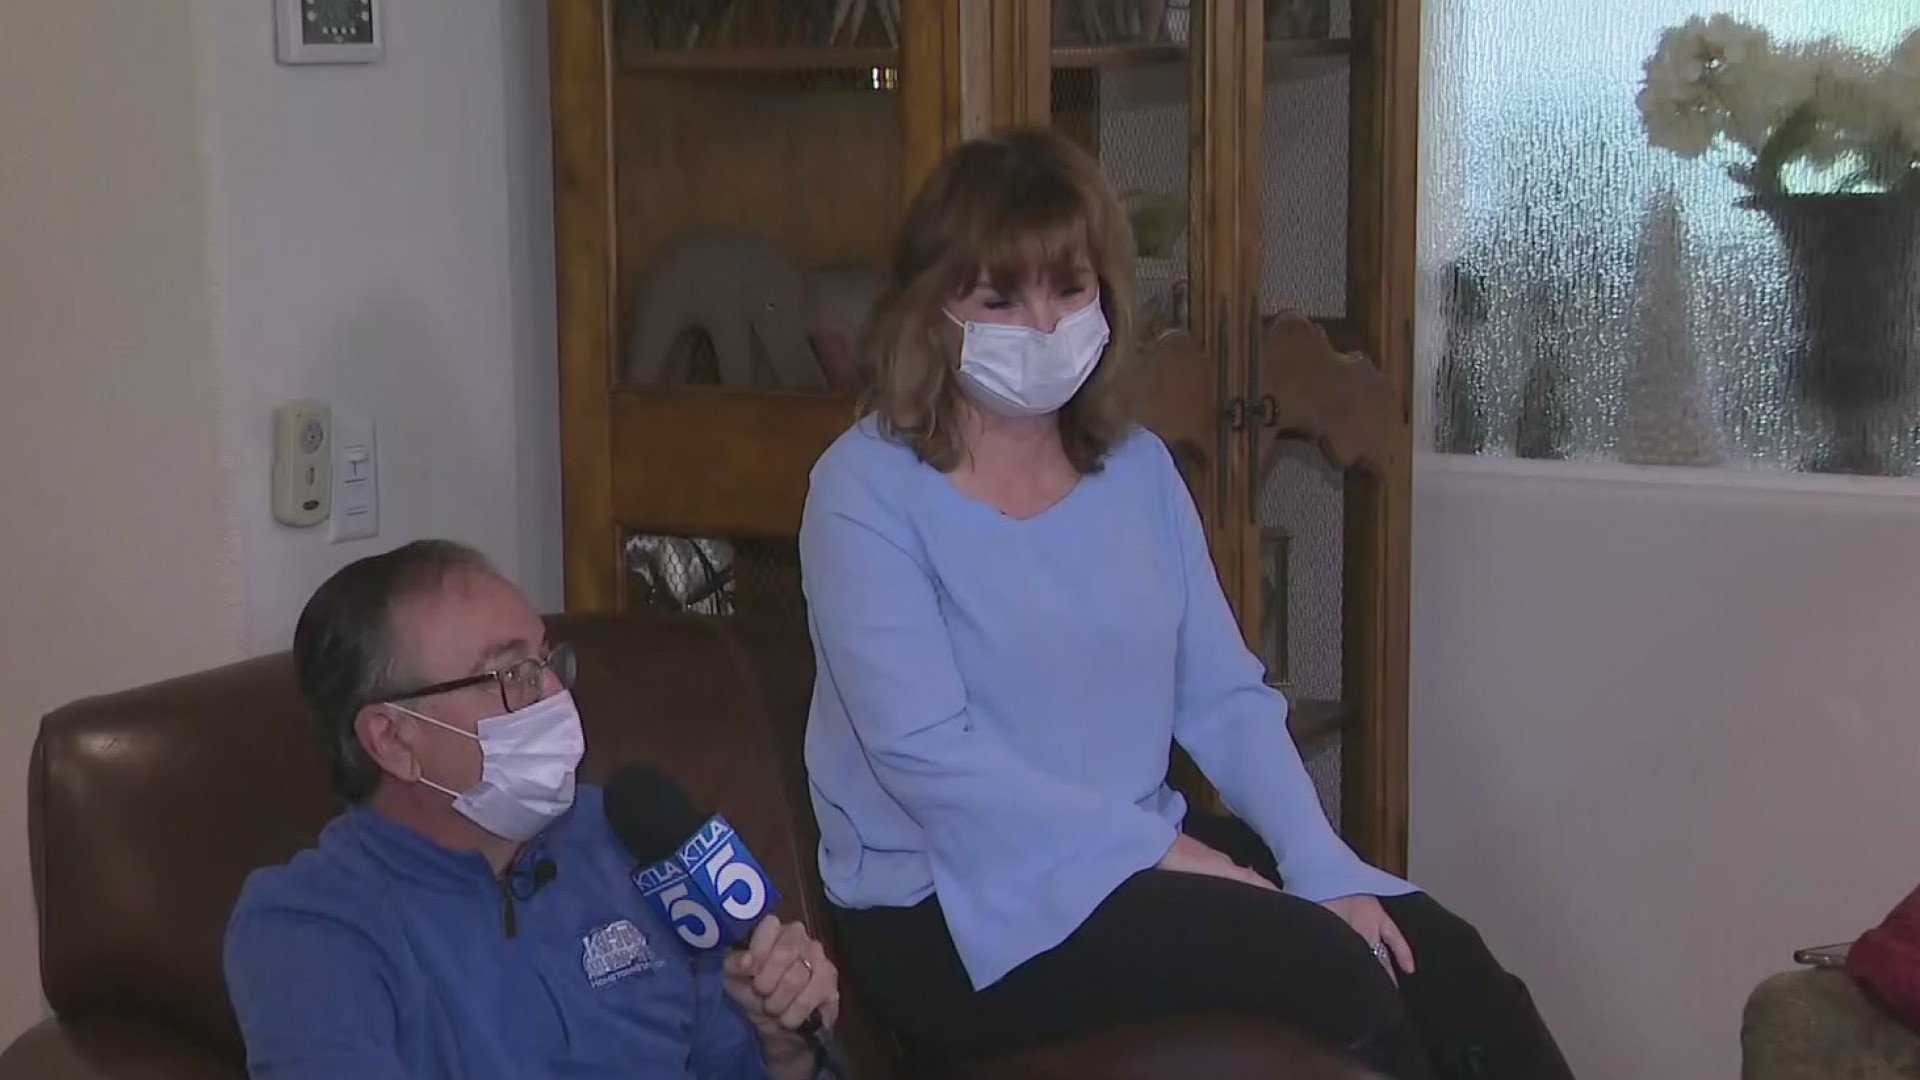 Carl Goldman and Jeri Seratti-Goldman speak to KTLA from their Santa Clarita home on April 13, 2020. (KTLA)